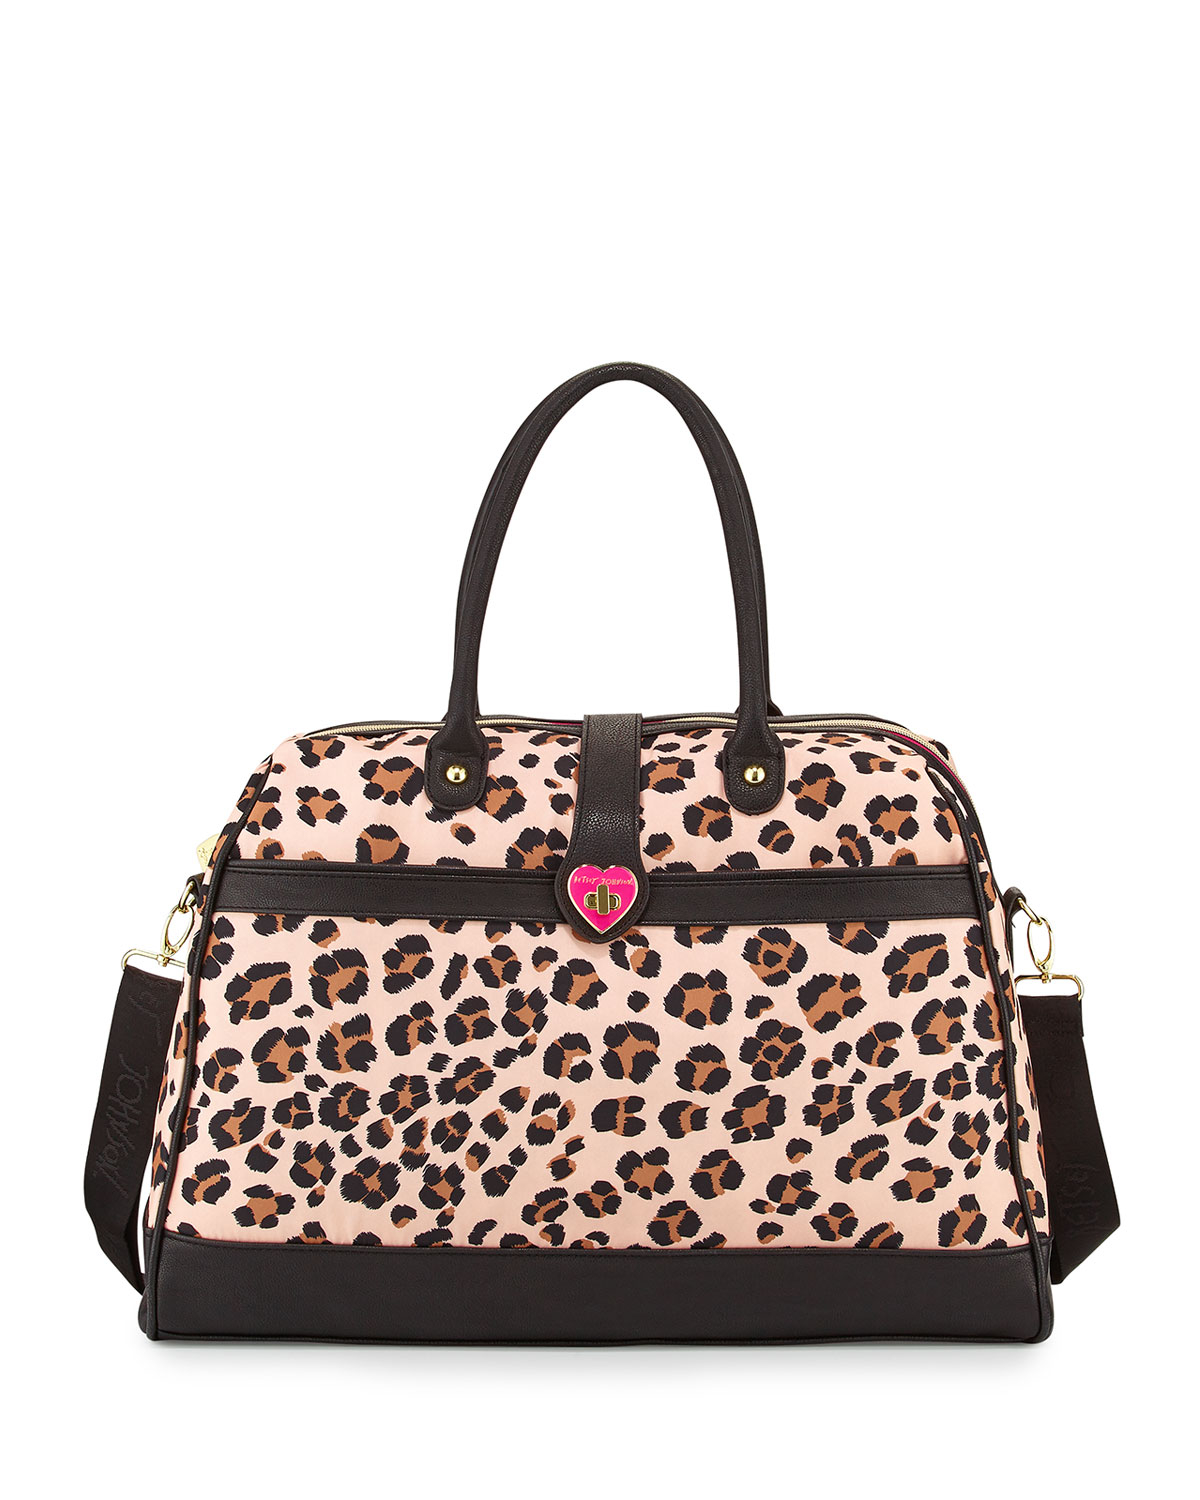 4b720fb25c Betsey Johnson - Multicolor Leopard-Print Weekender Bag - Lyst